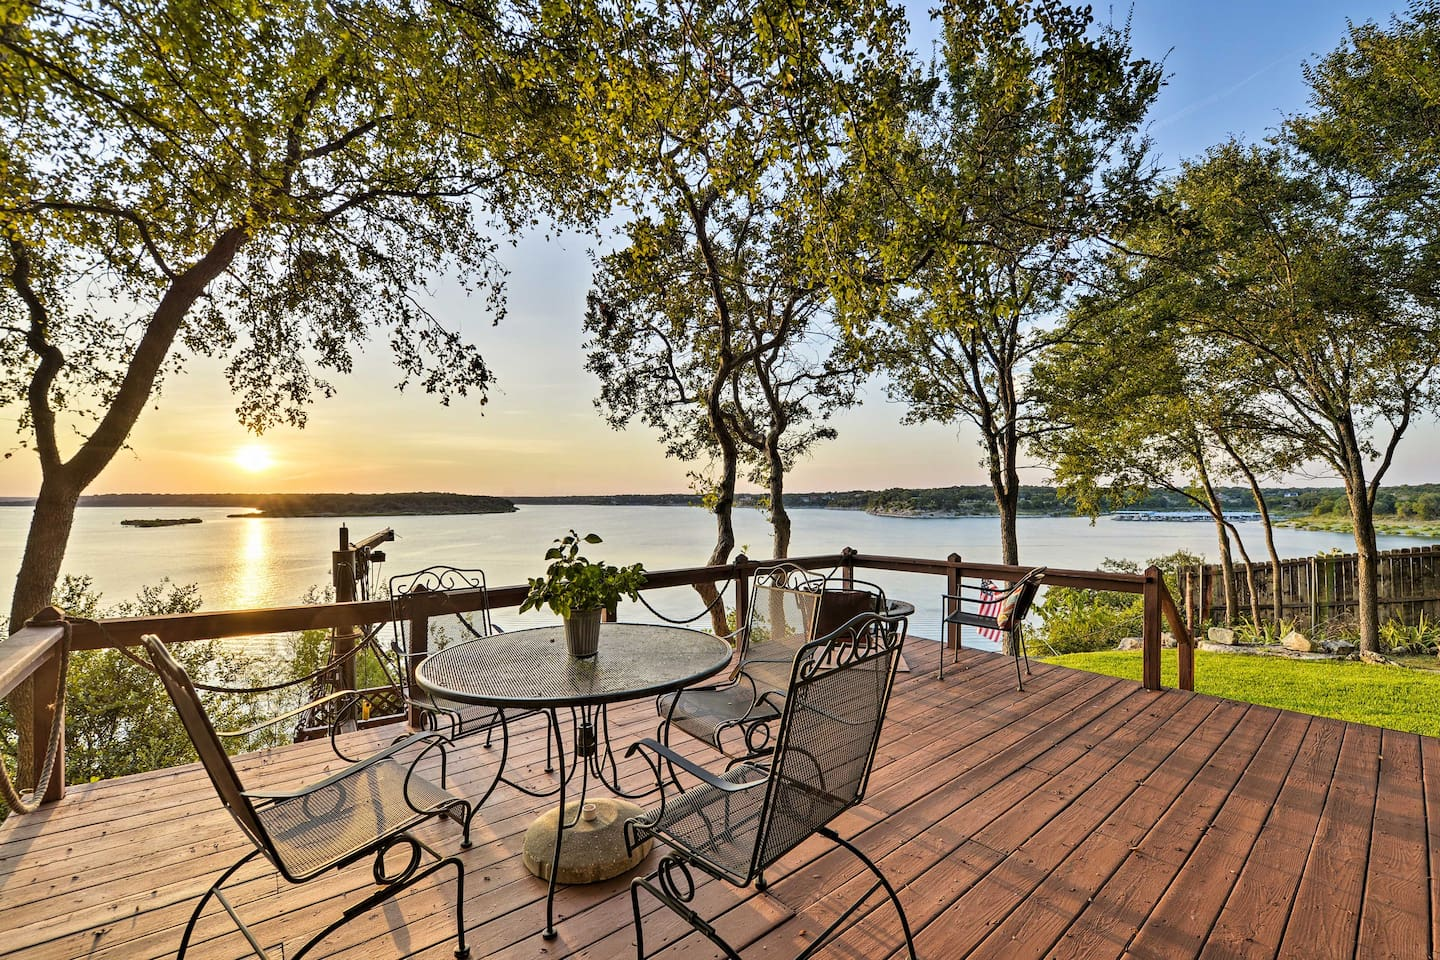 Morgan's Point Resort, Texas is calling your name.